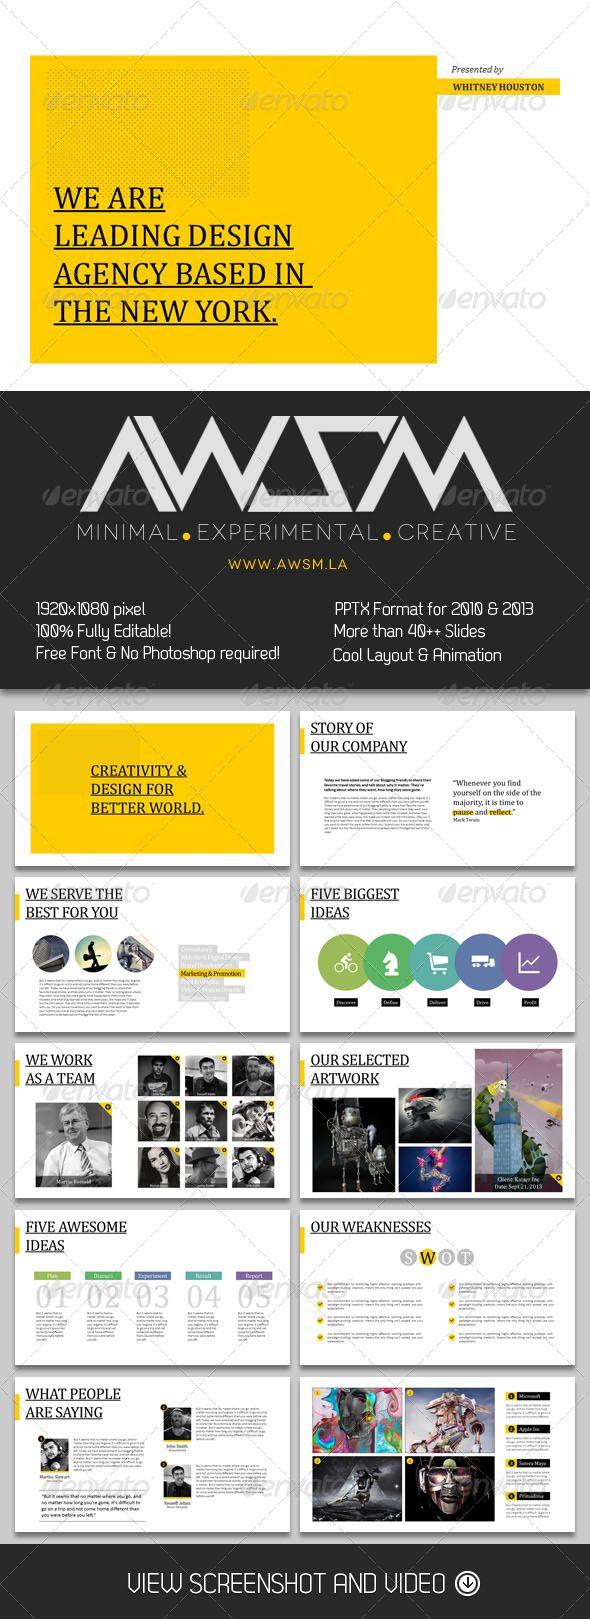 Presentation templates biz minimal powerpoint template design presentation templates biz minimal powerpoint template design presentation toneelgroepblik Image collections